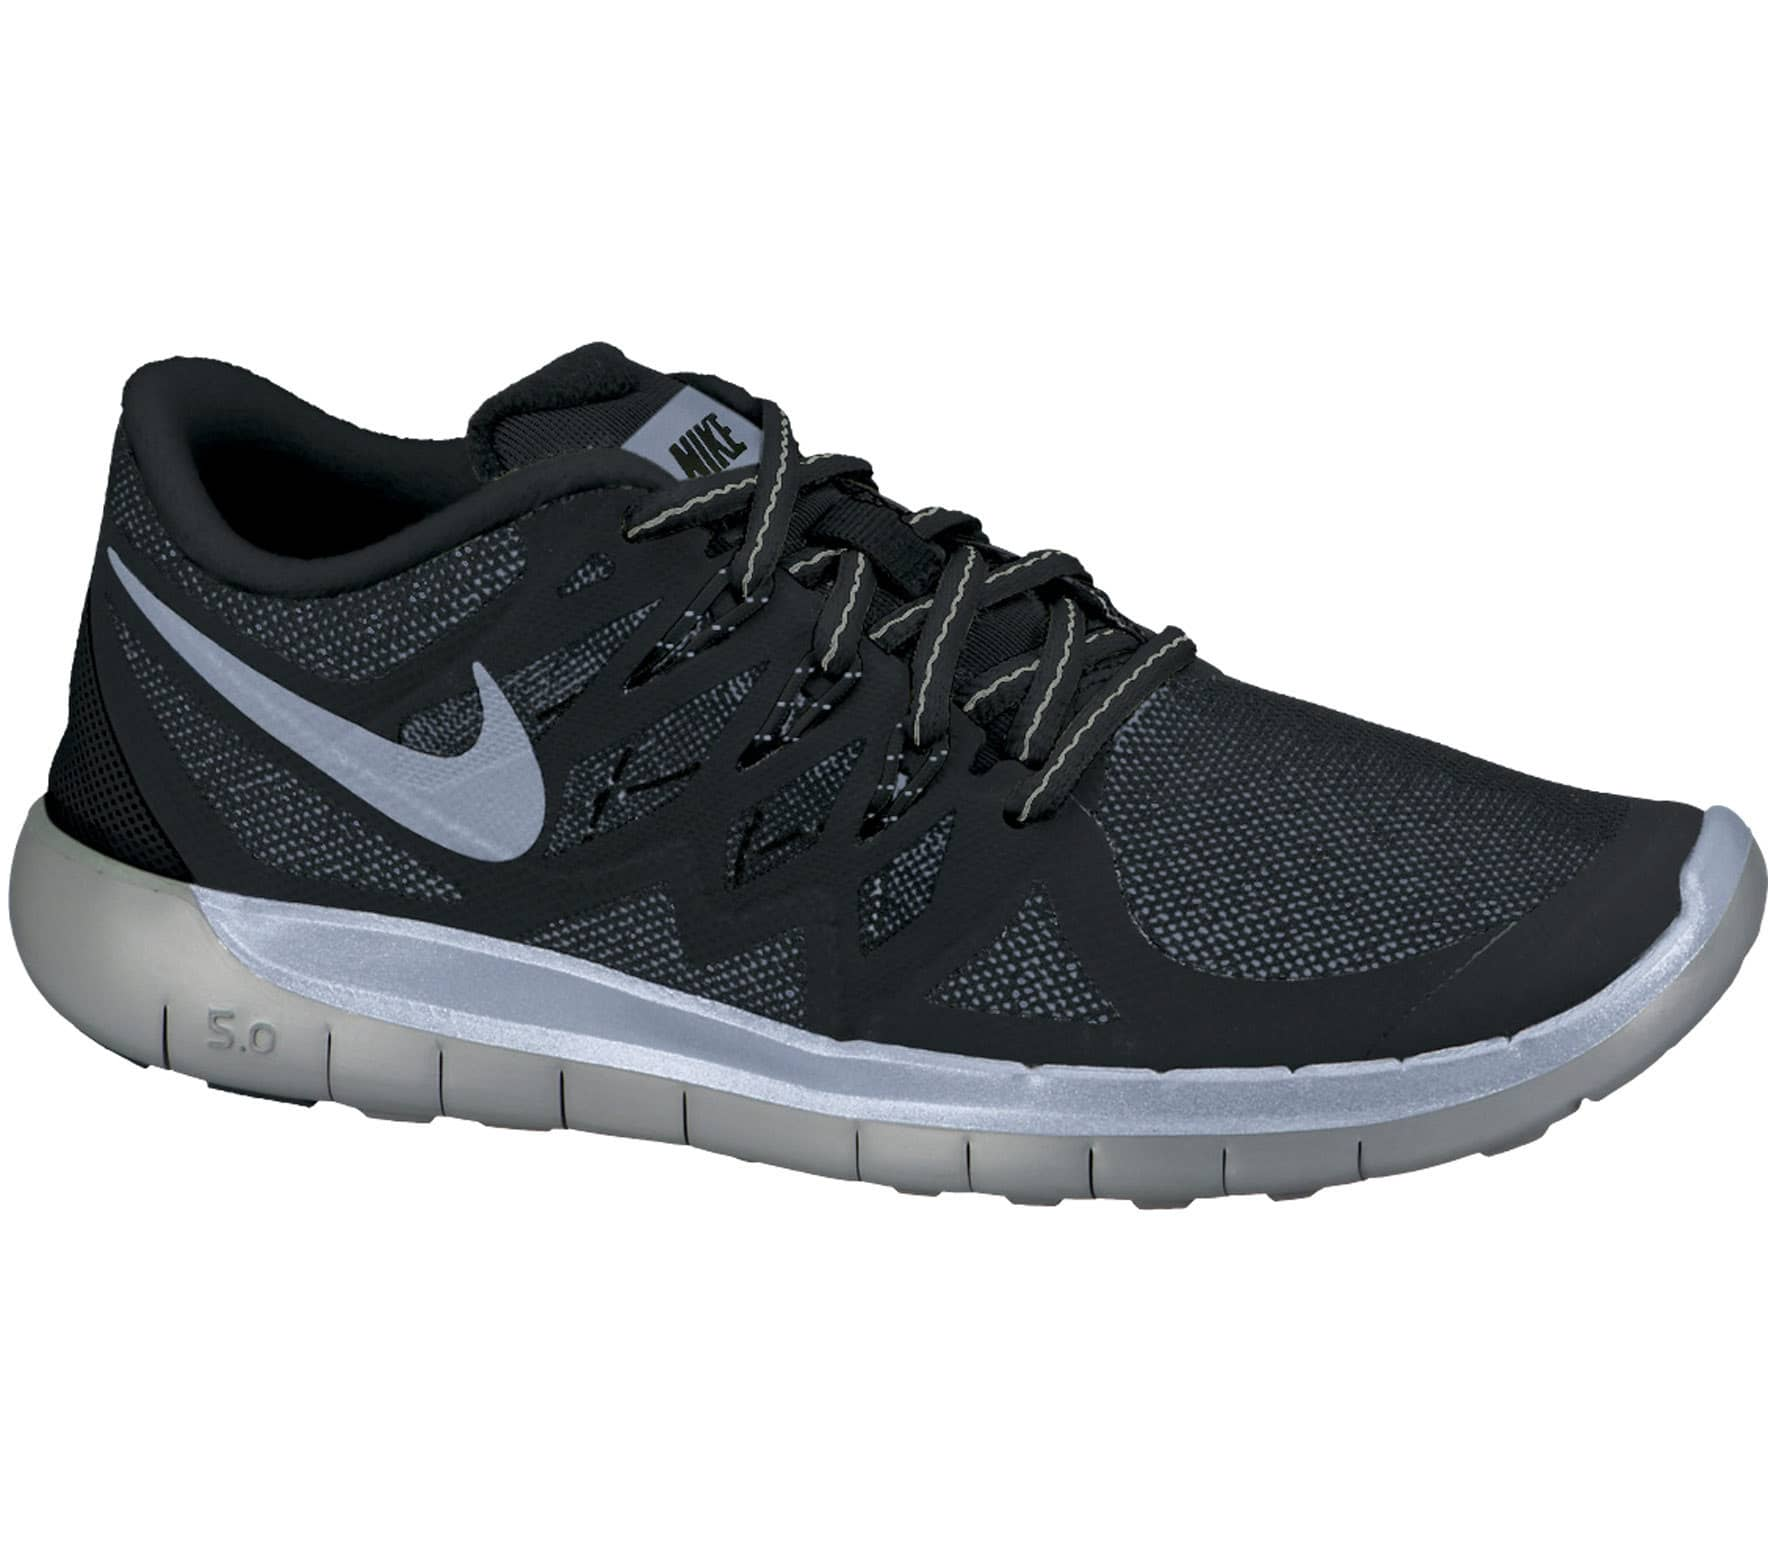 aa1fec98c84e Nike - Free 5.0 Flash Children running shoes (black silver) - buy it ...